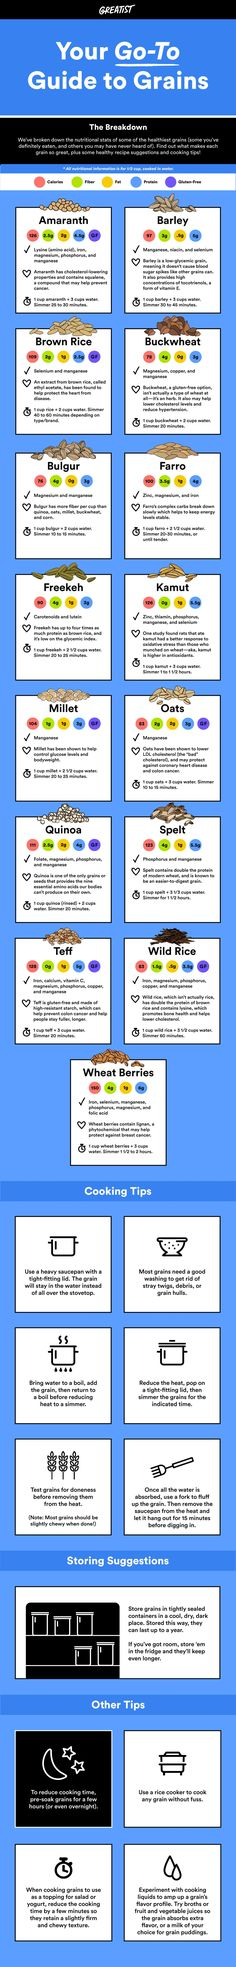 We've broken down the nutritional stats and cooking tips of the world's healthiest grains. #greatist https://greatist.com/health/guide-to-healthier-grains-infographic